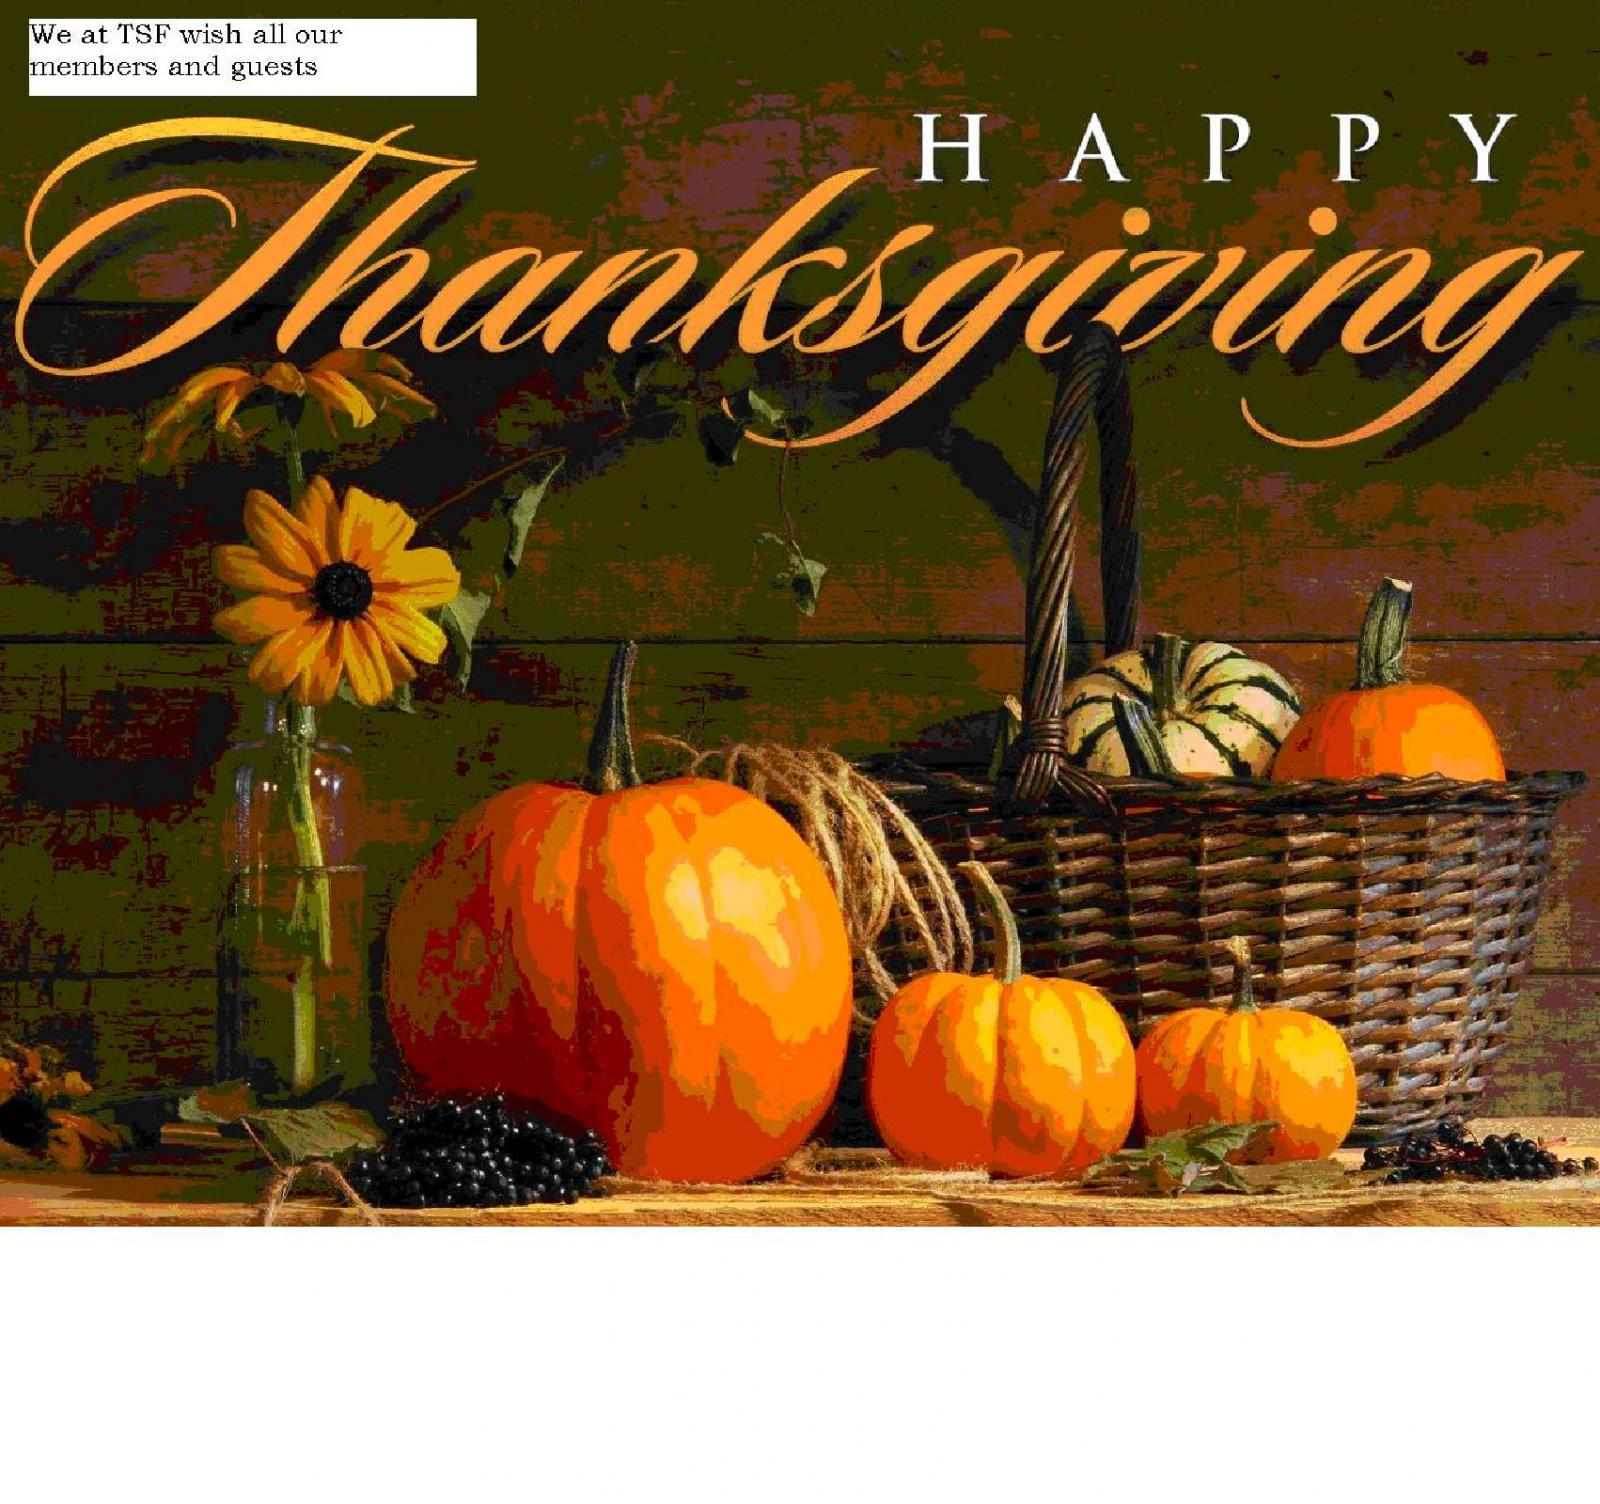 Click image for larger version  Name:Thanksgiving.jpg Views:46 Size:294.4 KB ID:206674